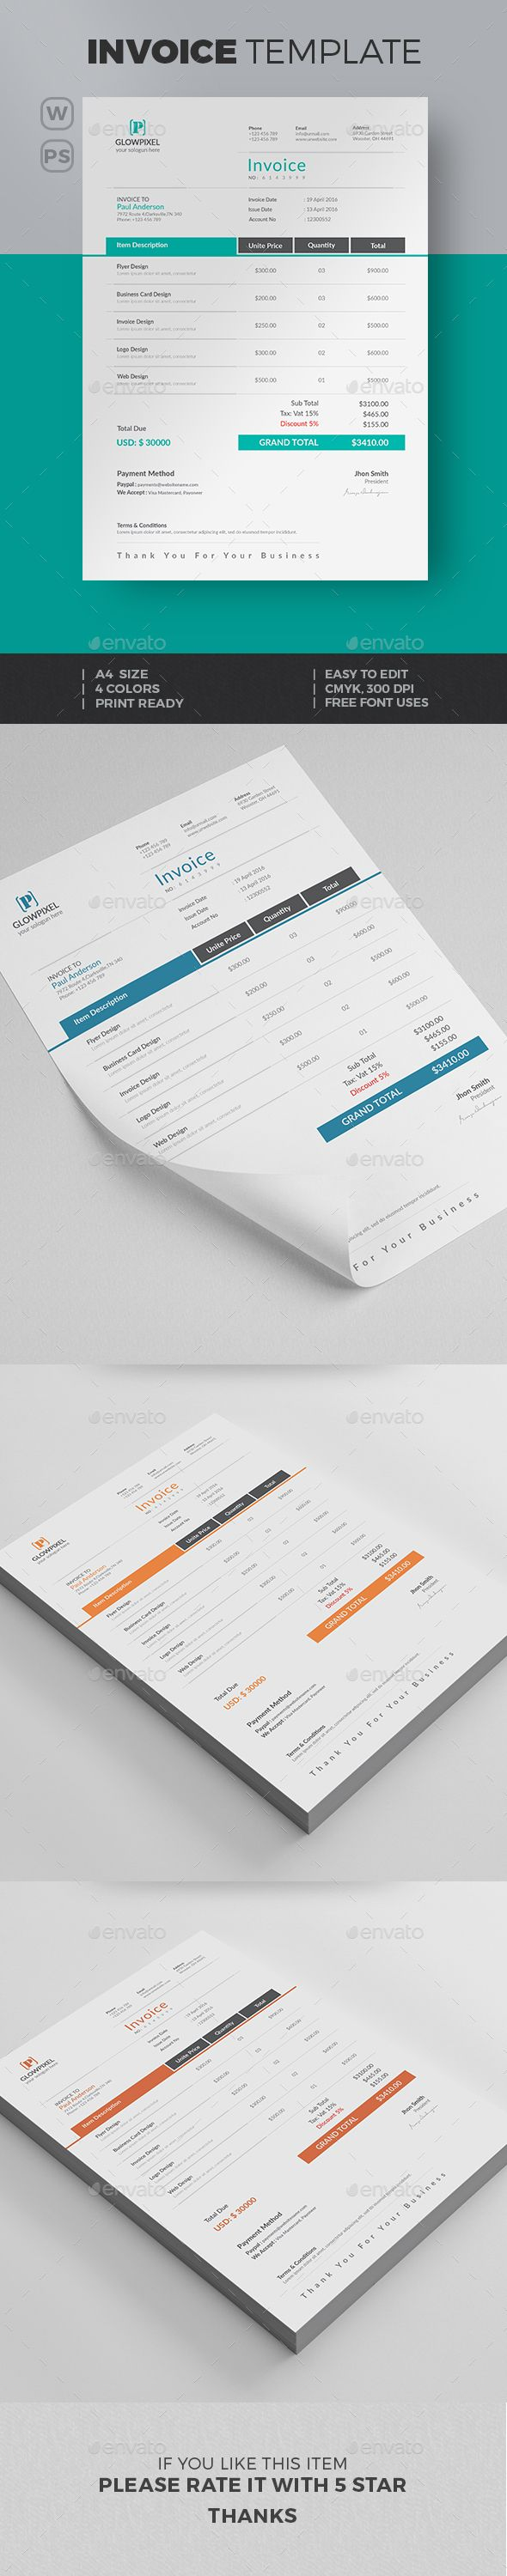 Invoice Template PSD, MS Word. Download here: http://graphicriver.net/item/invoice/15816811?ref=ksioks